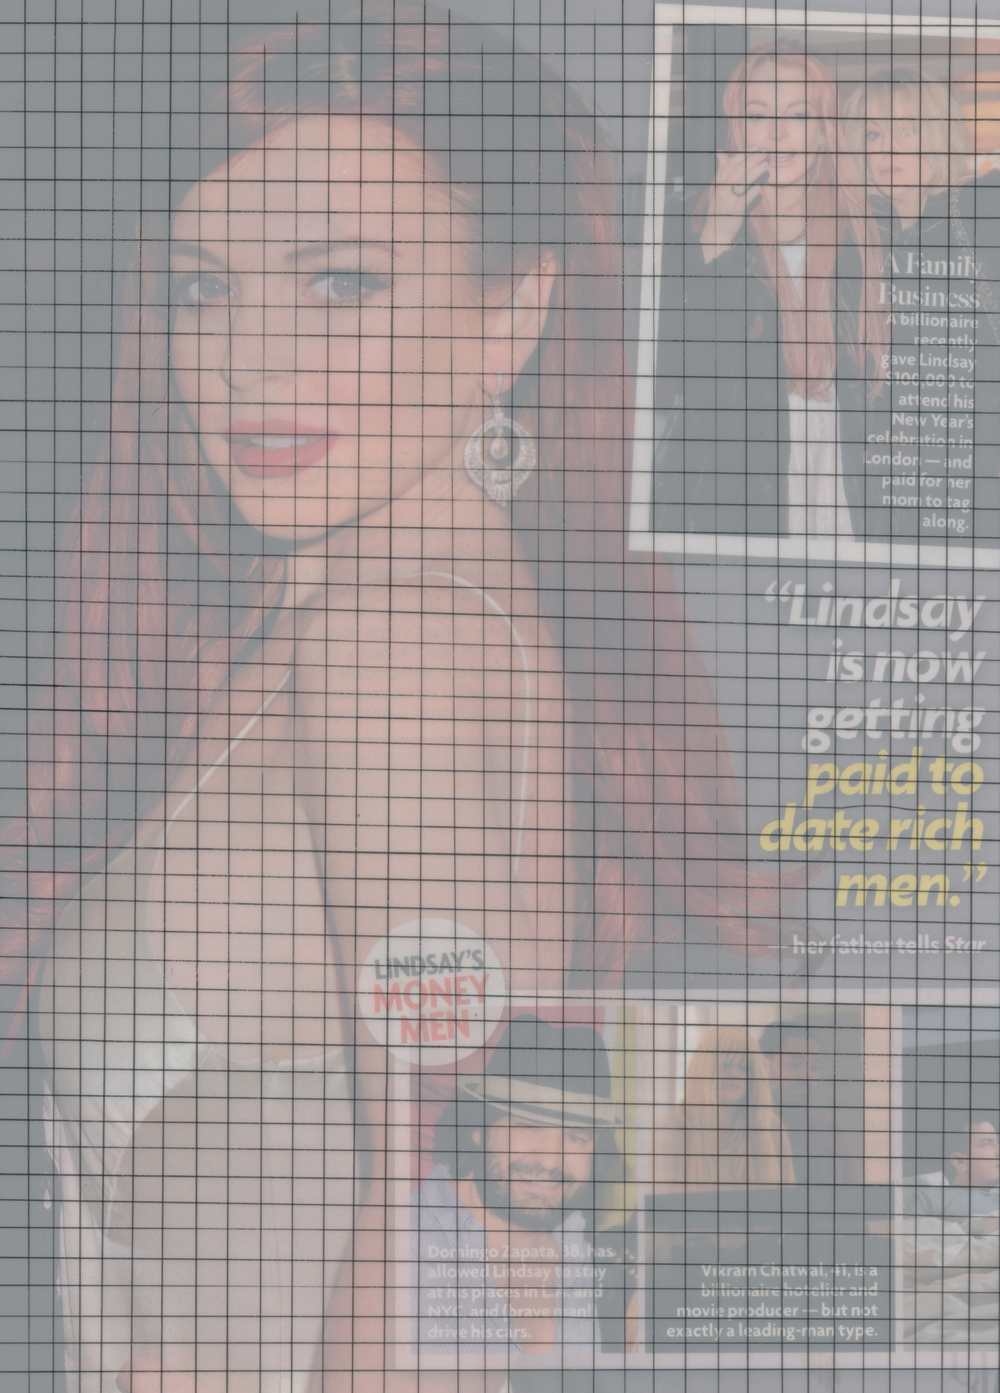 Celebrity Grid (Getting Paid to Date Rich Men), 2013  , Pen on mylar, archival pigment print